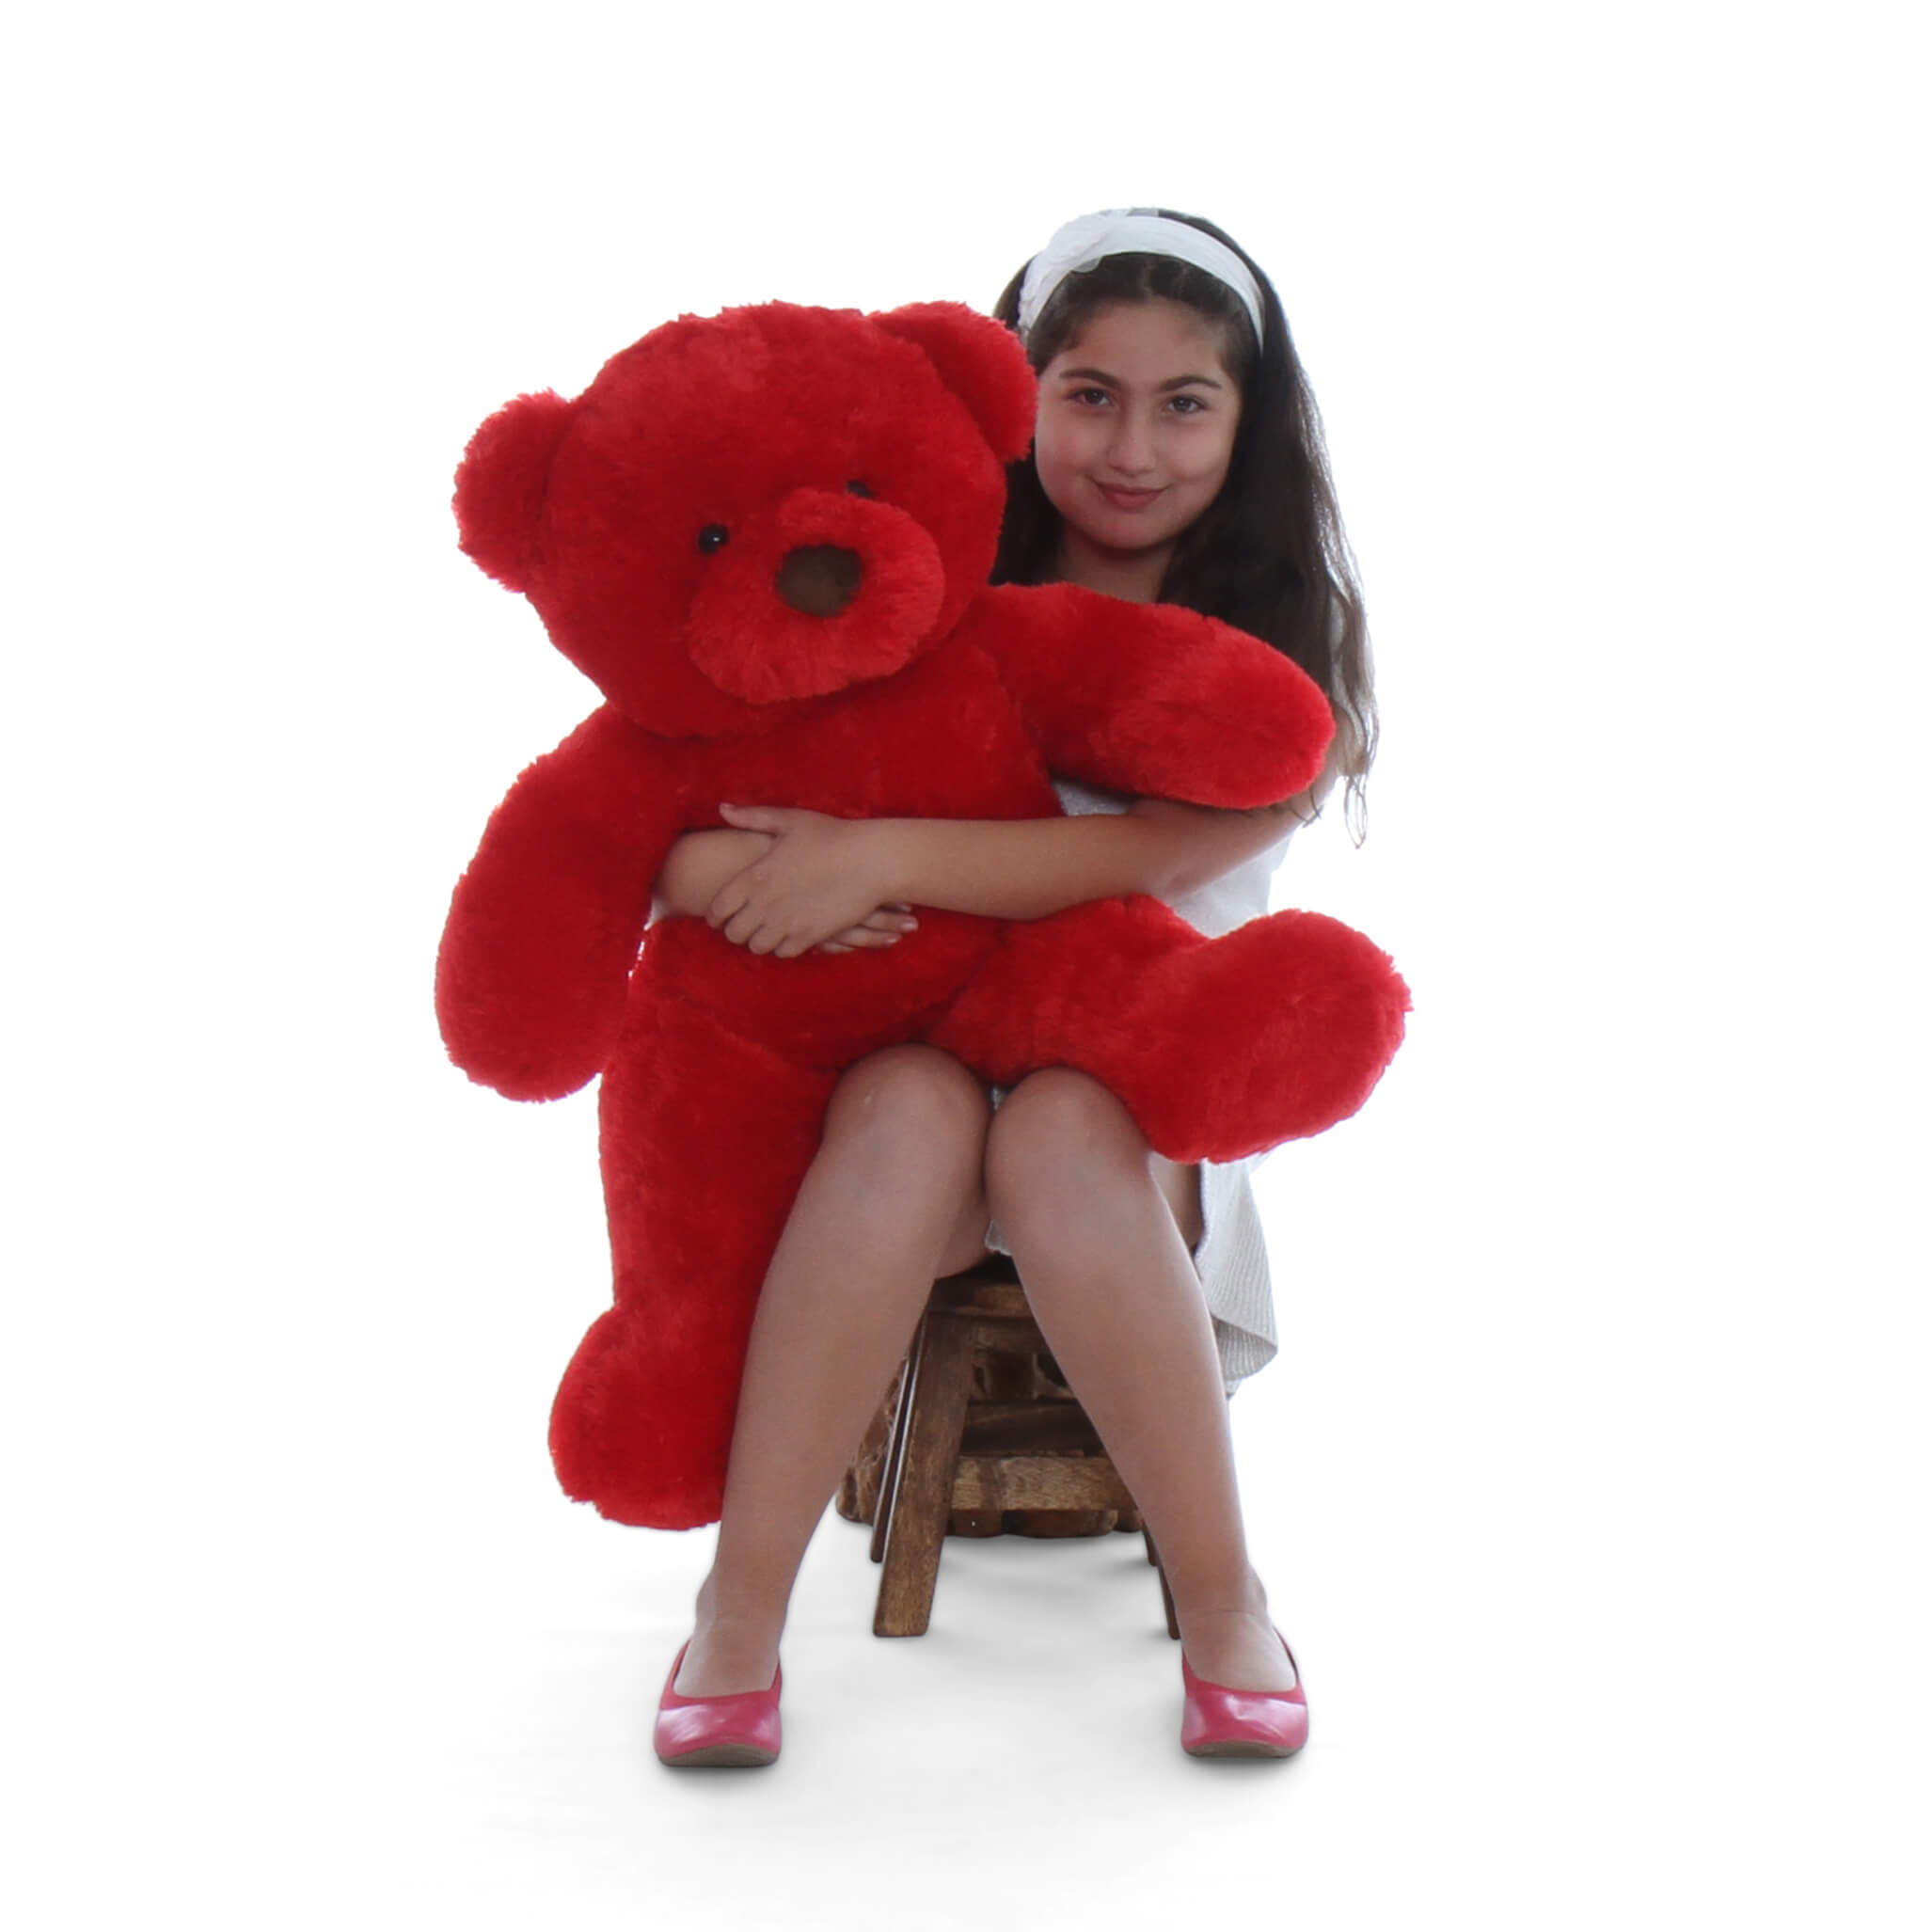 big-red-teddy-bear-huggable-riley-chubs-30in-1.jpg